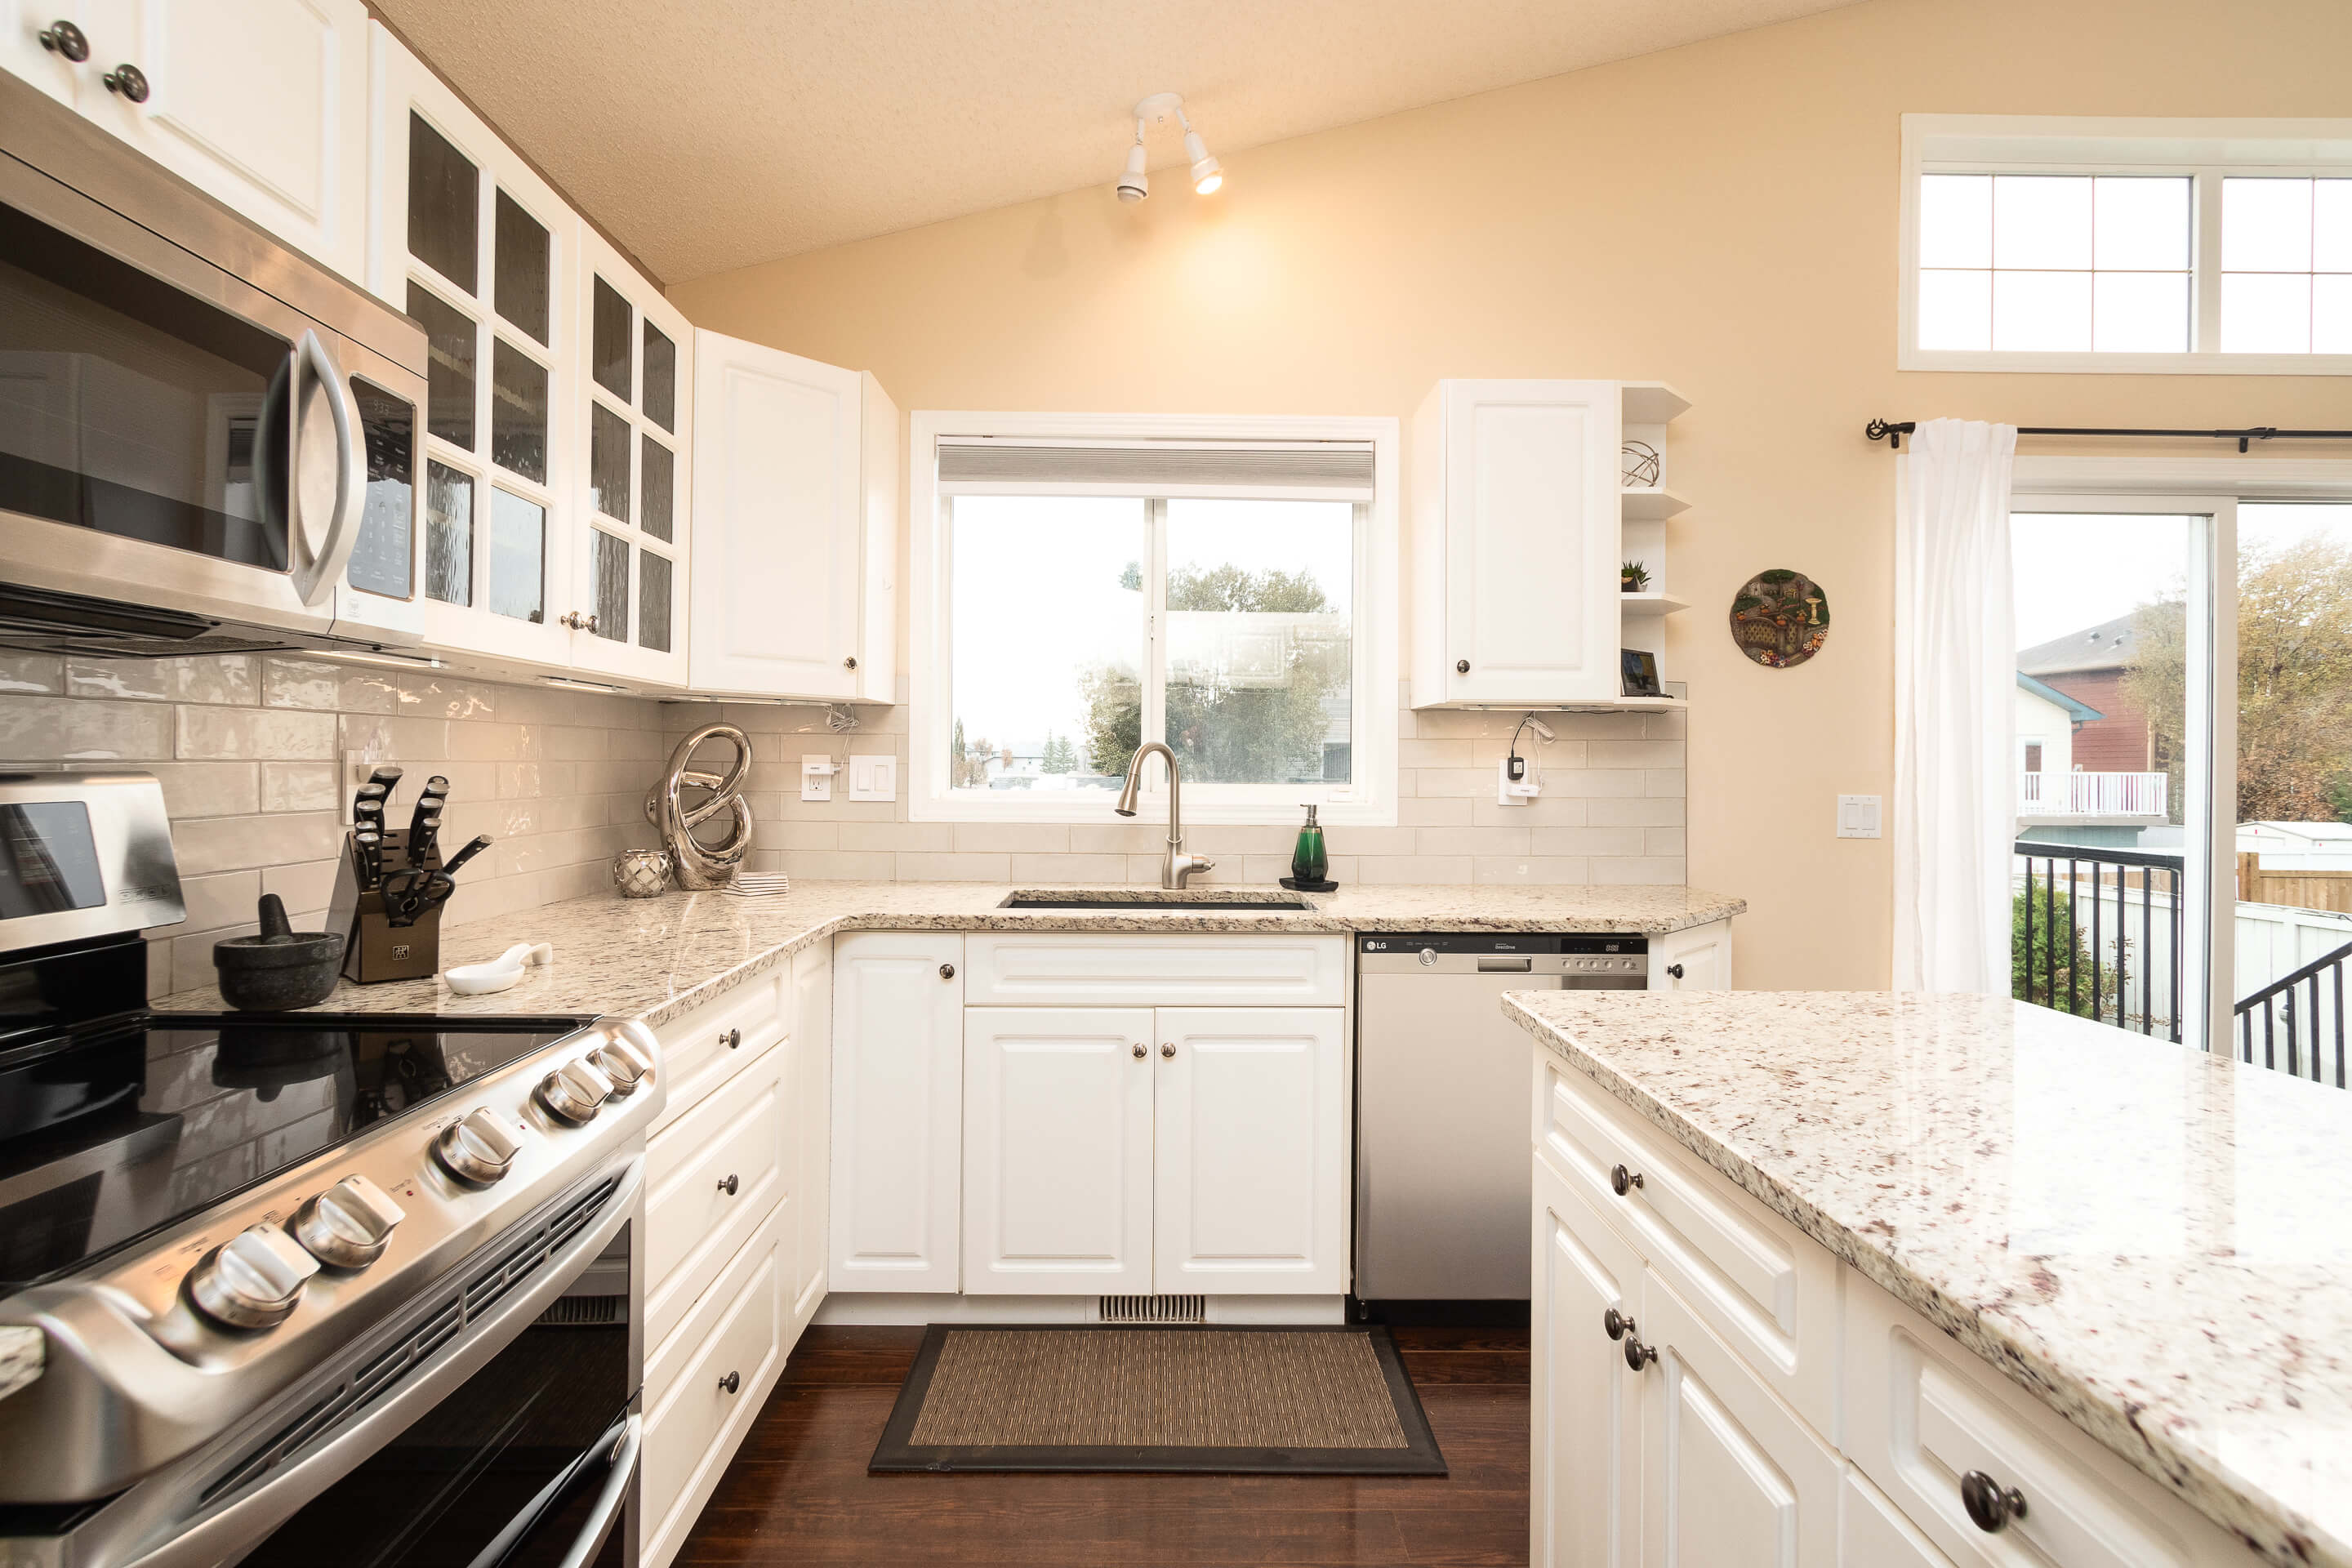 Hello Gorgeous - 225 Stonegate Crescent NW Airdrie - Tara Molina Real Estate (9 of 37)